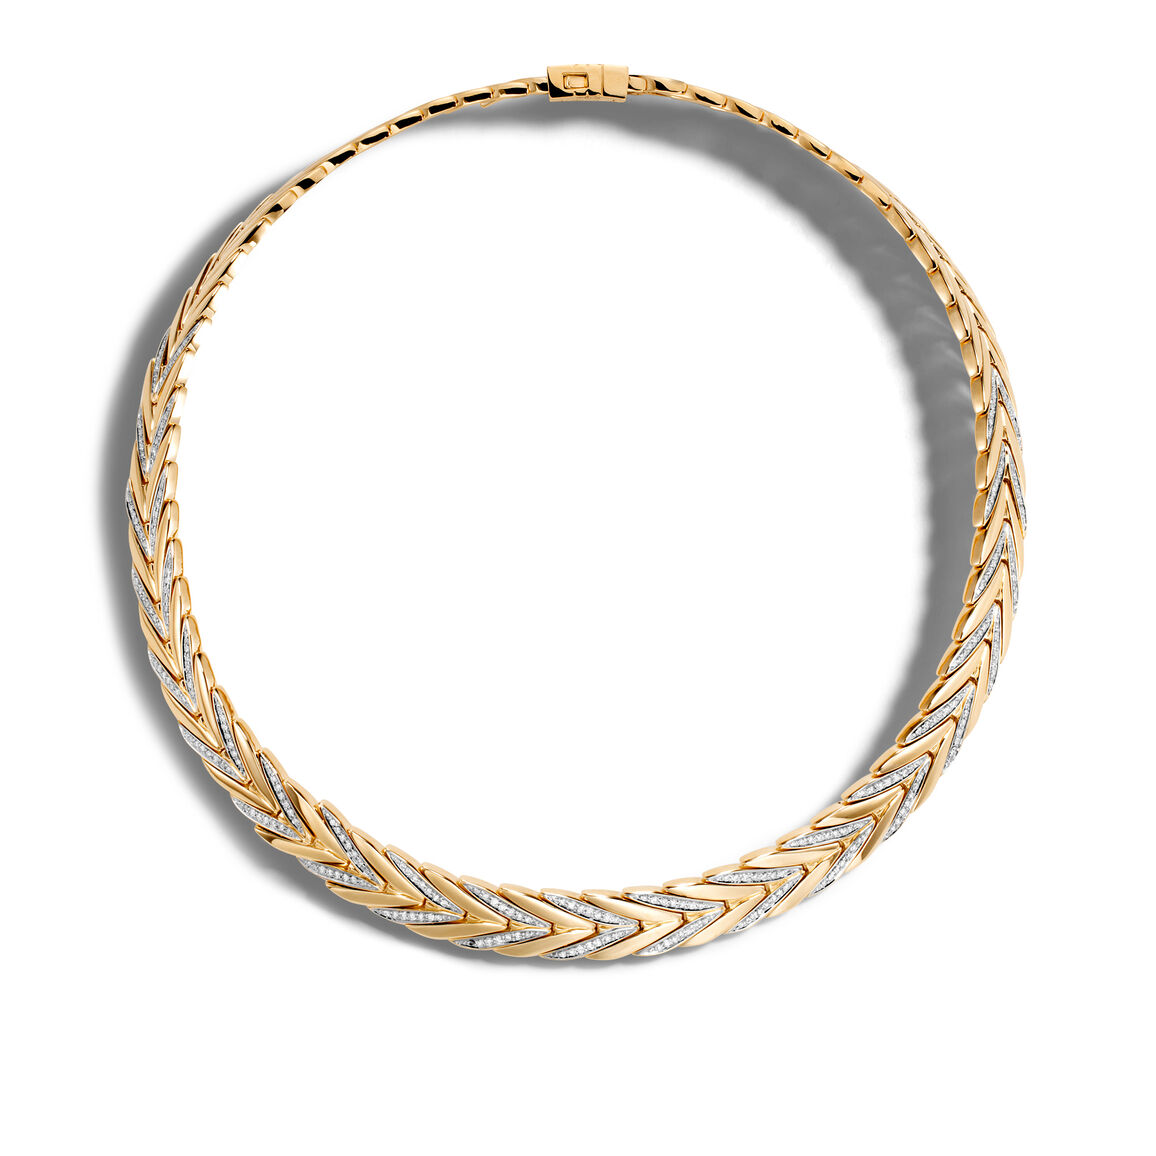 Modern Chain 11MM Necklace in 18K Gold with Diamonds